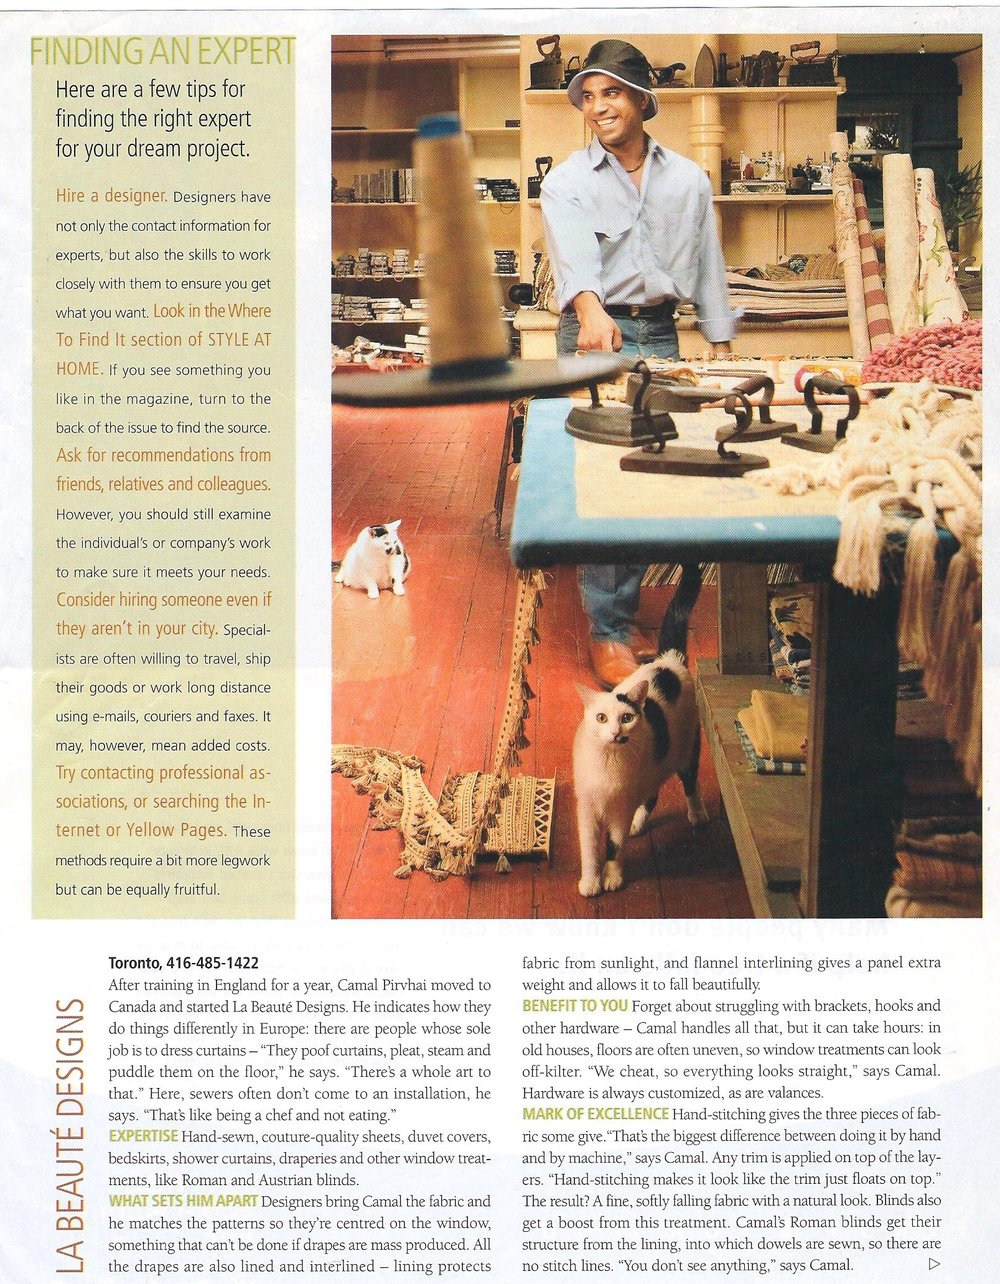 Camal Pirbhai - article in the Style at Home Magazine.jpg (1).jpg